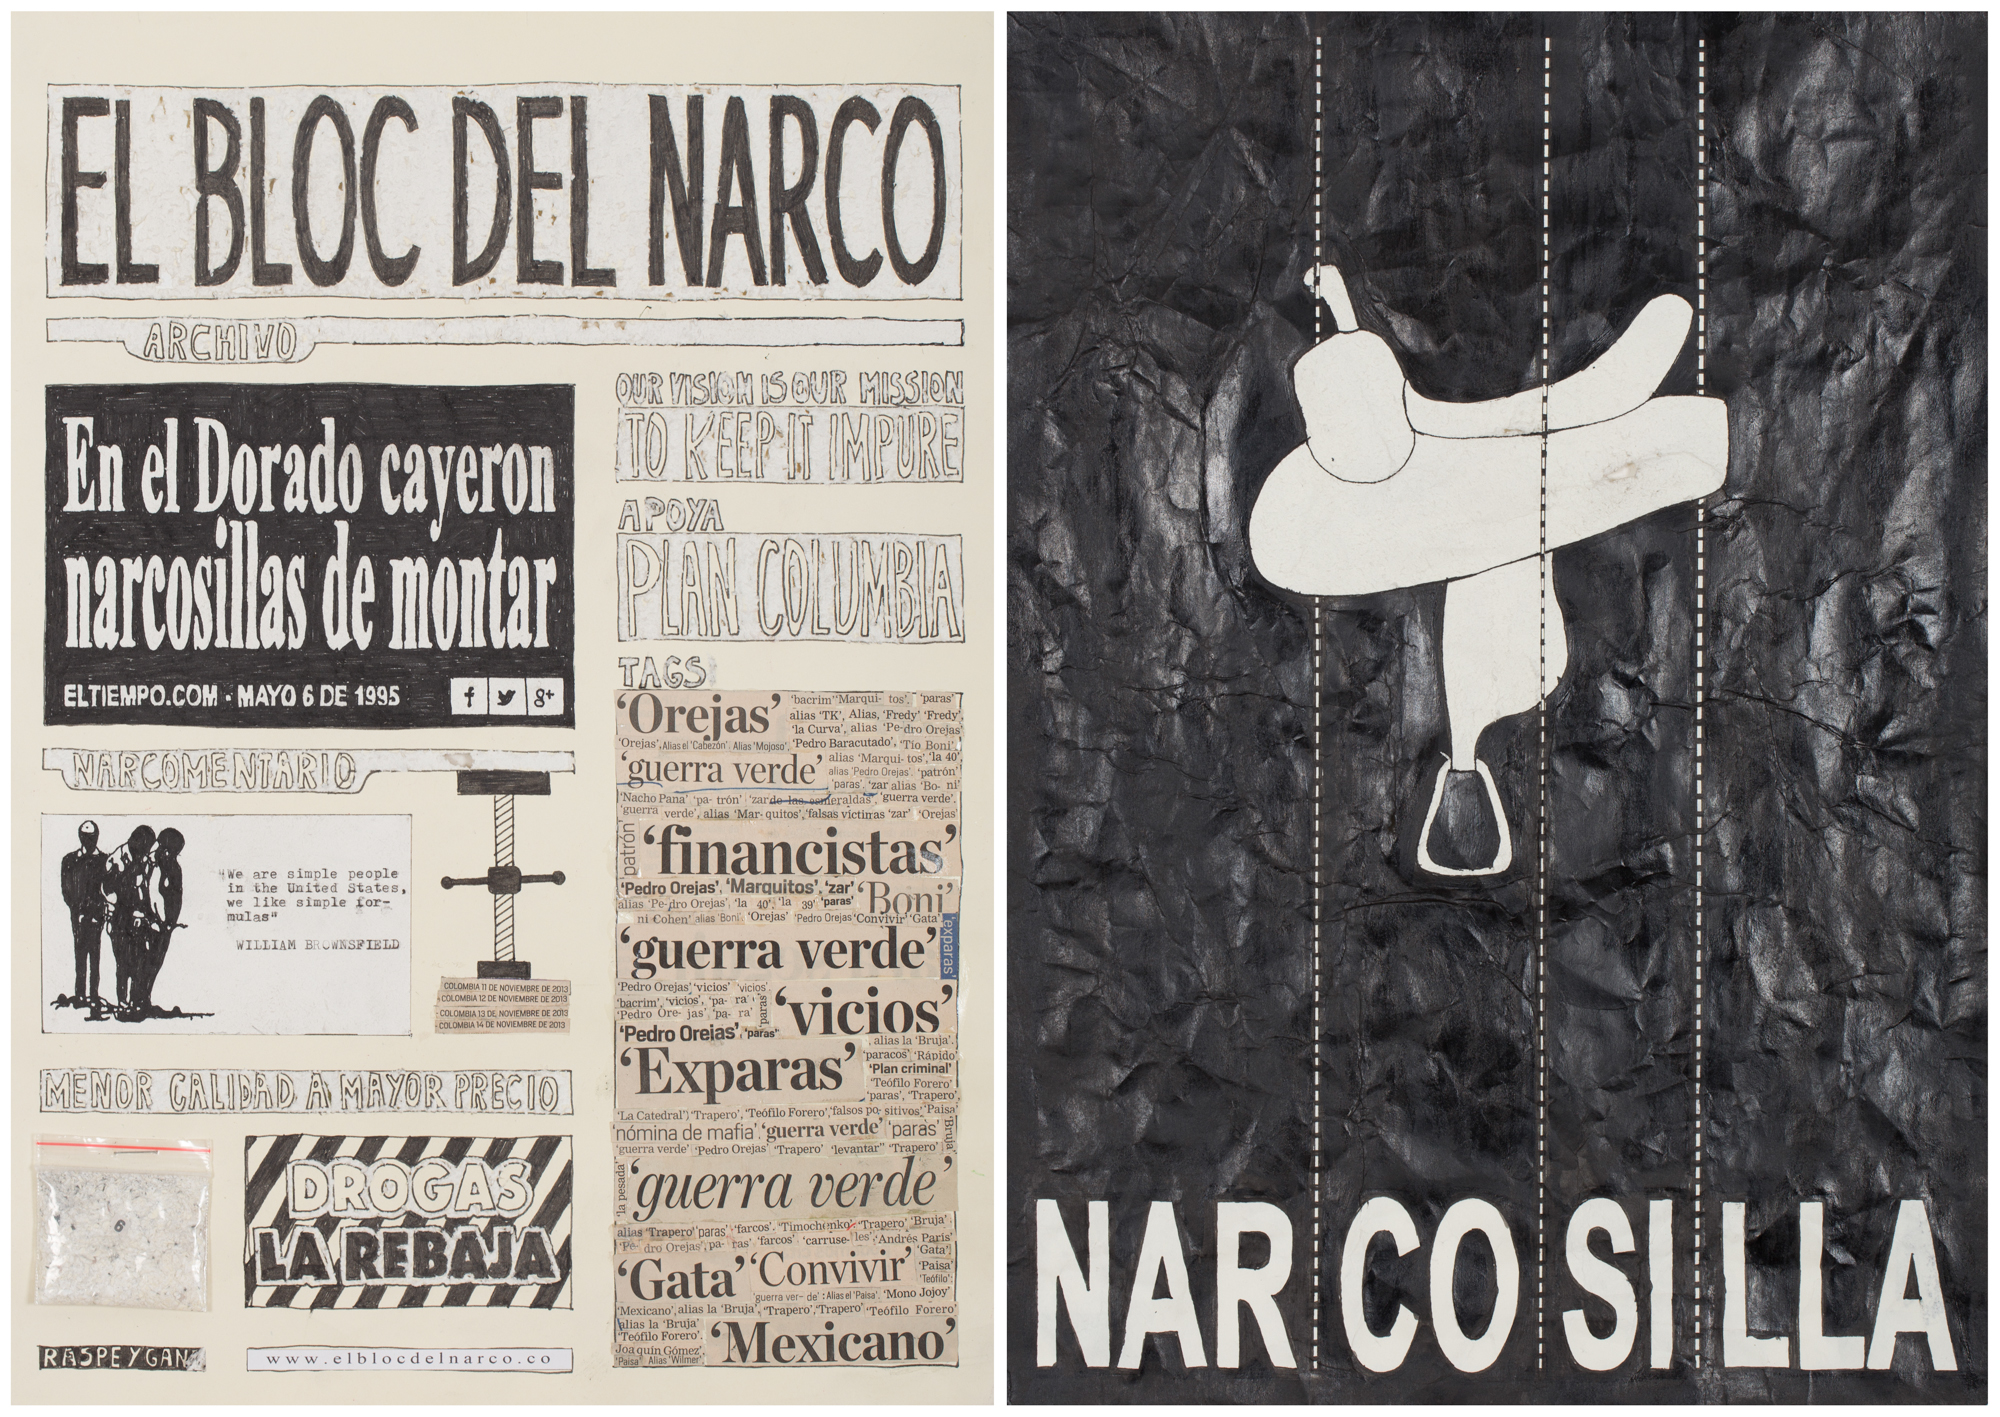 Camilo Restrepo. <em>El Bloc Del Narco #6 </em>, 2016. Ink, water-soluble wax pastel, tape, glue, newspaper clippings, staples, plastic bag, paper dust and saliva on paper, 16 1/2 x 24 inches (41.9 x 61 cm)